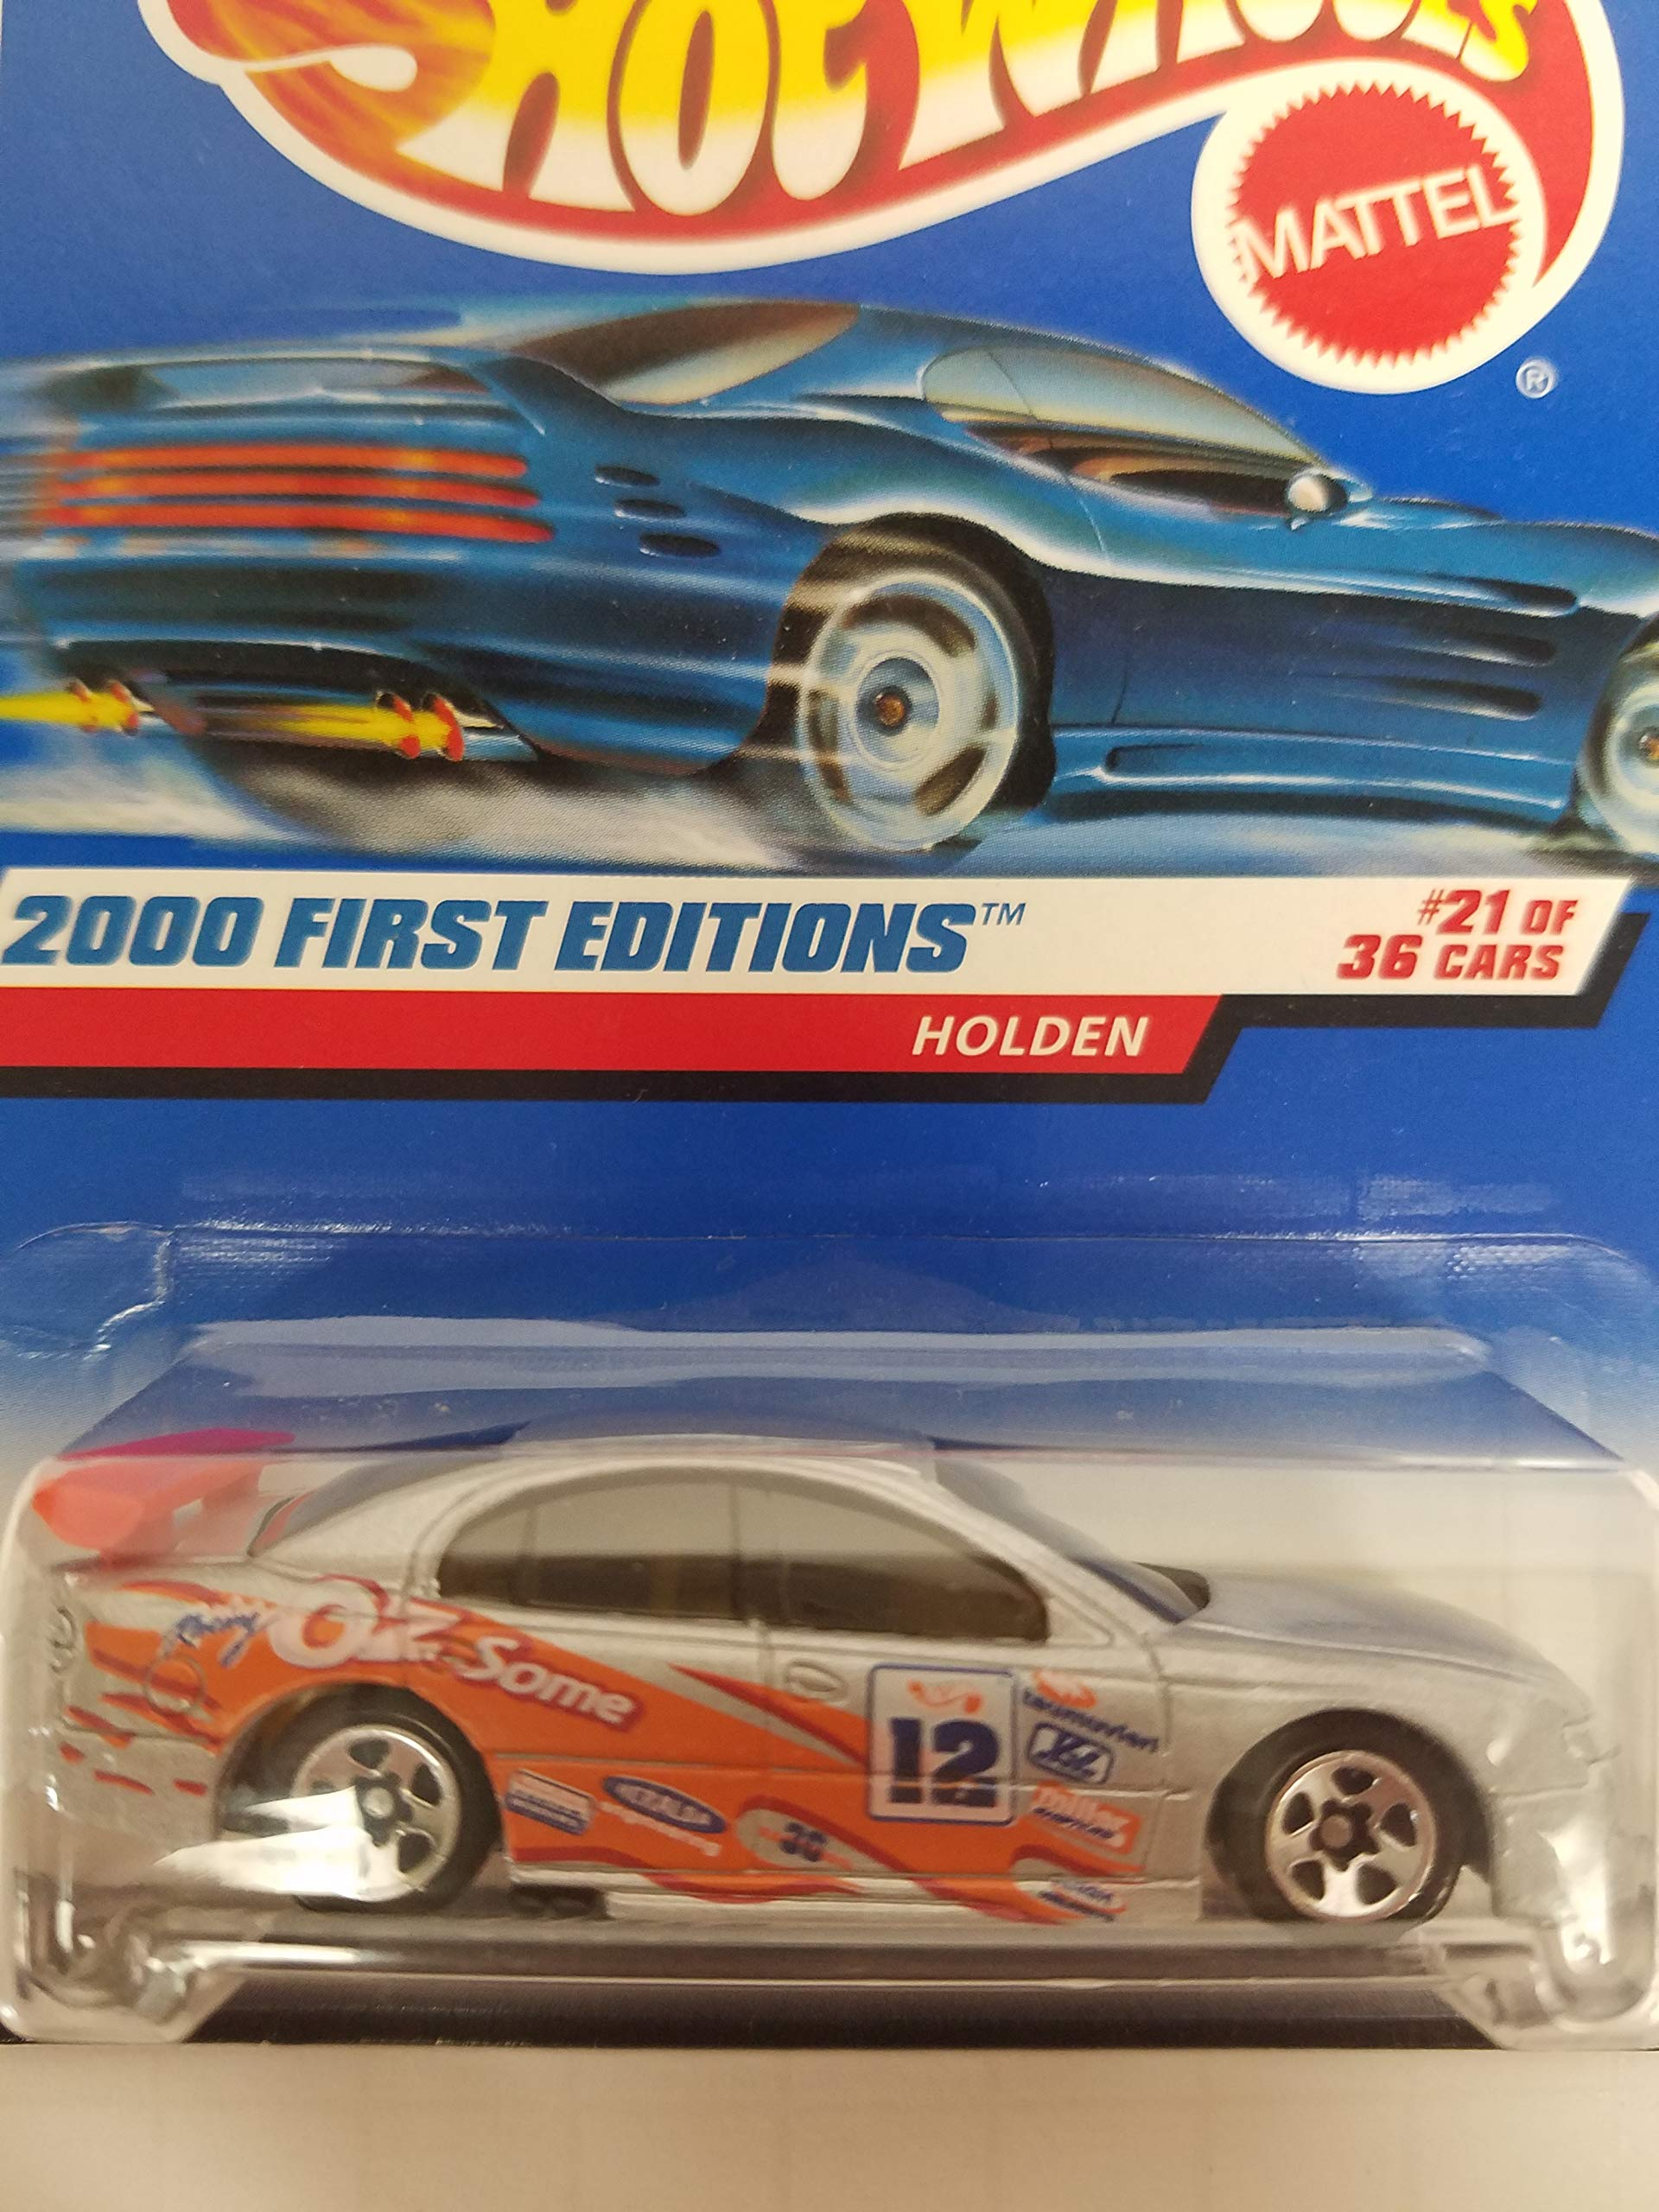 Holden First Editions 2000 First Editions 21 of 36 Hot Wheels